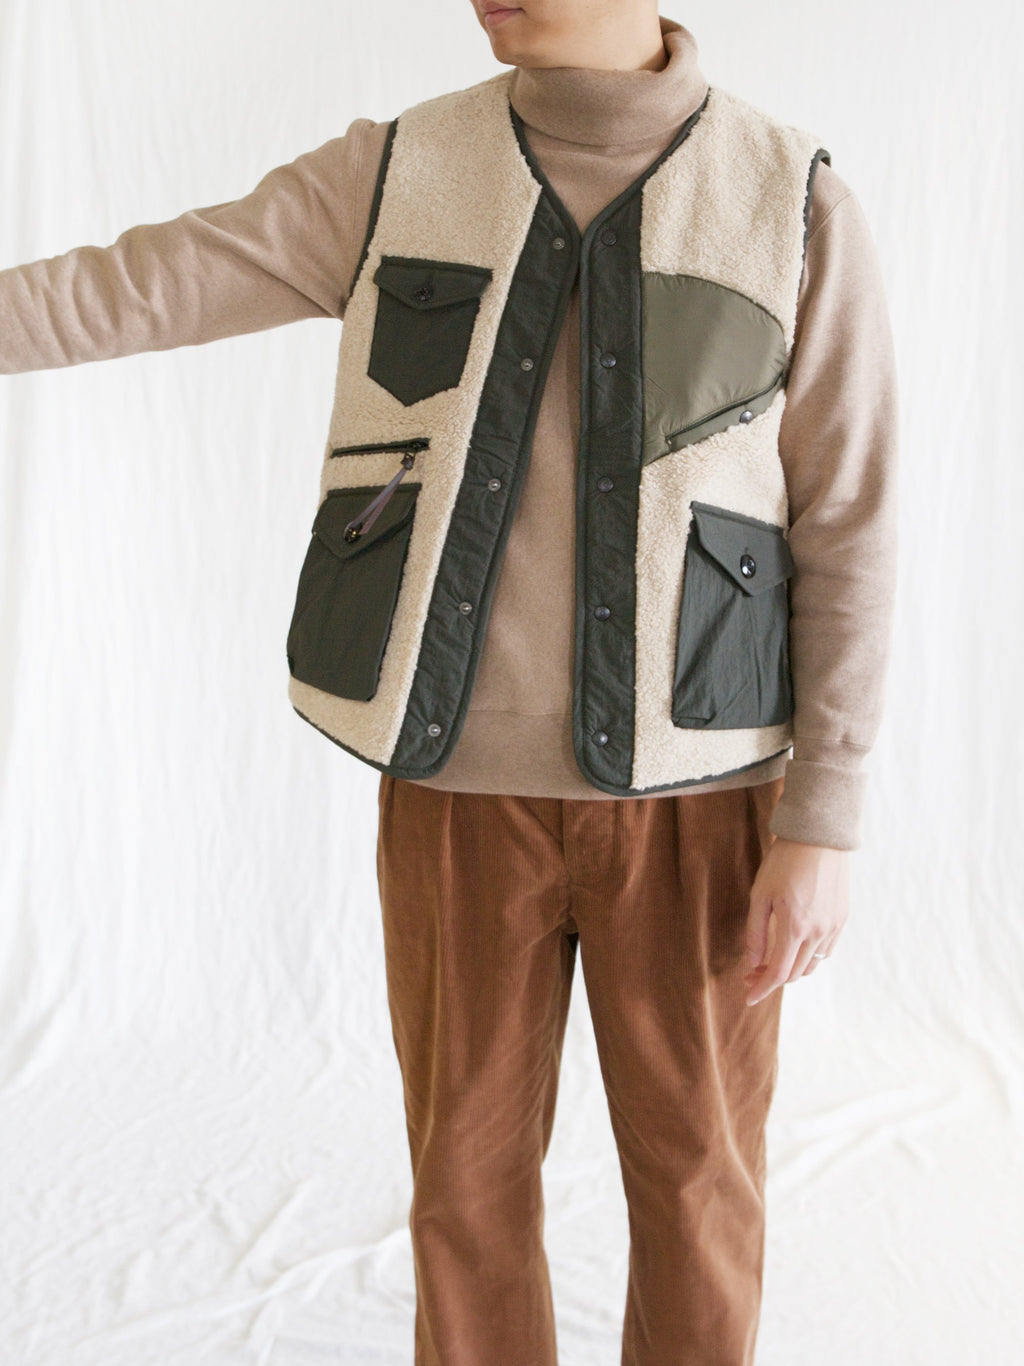 Namu Shop - Eastlogue Traveler Vest